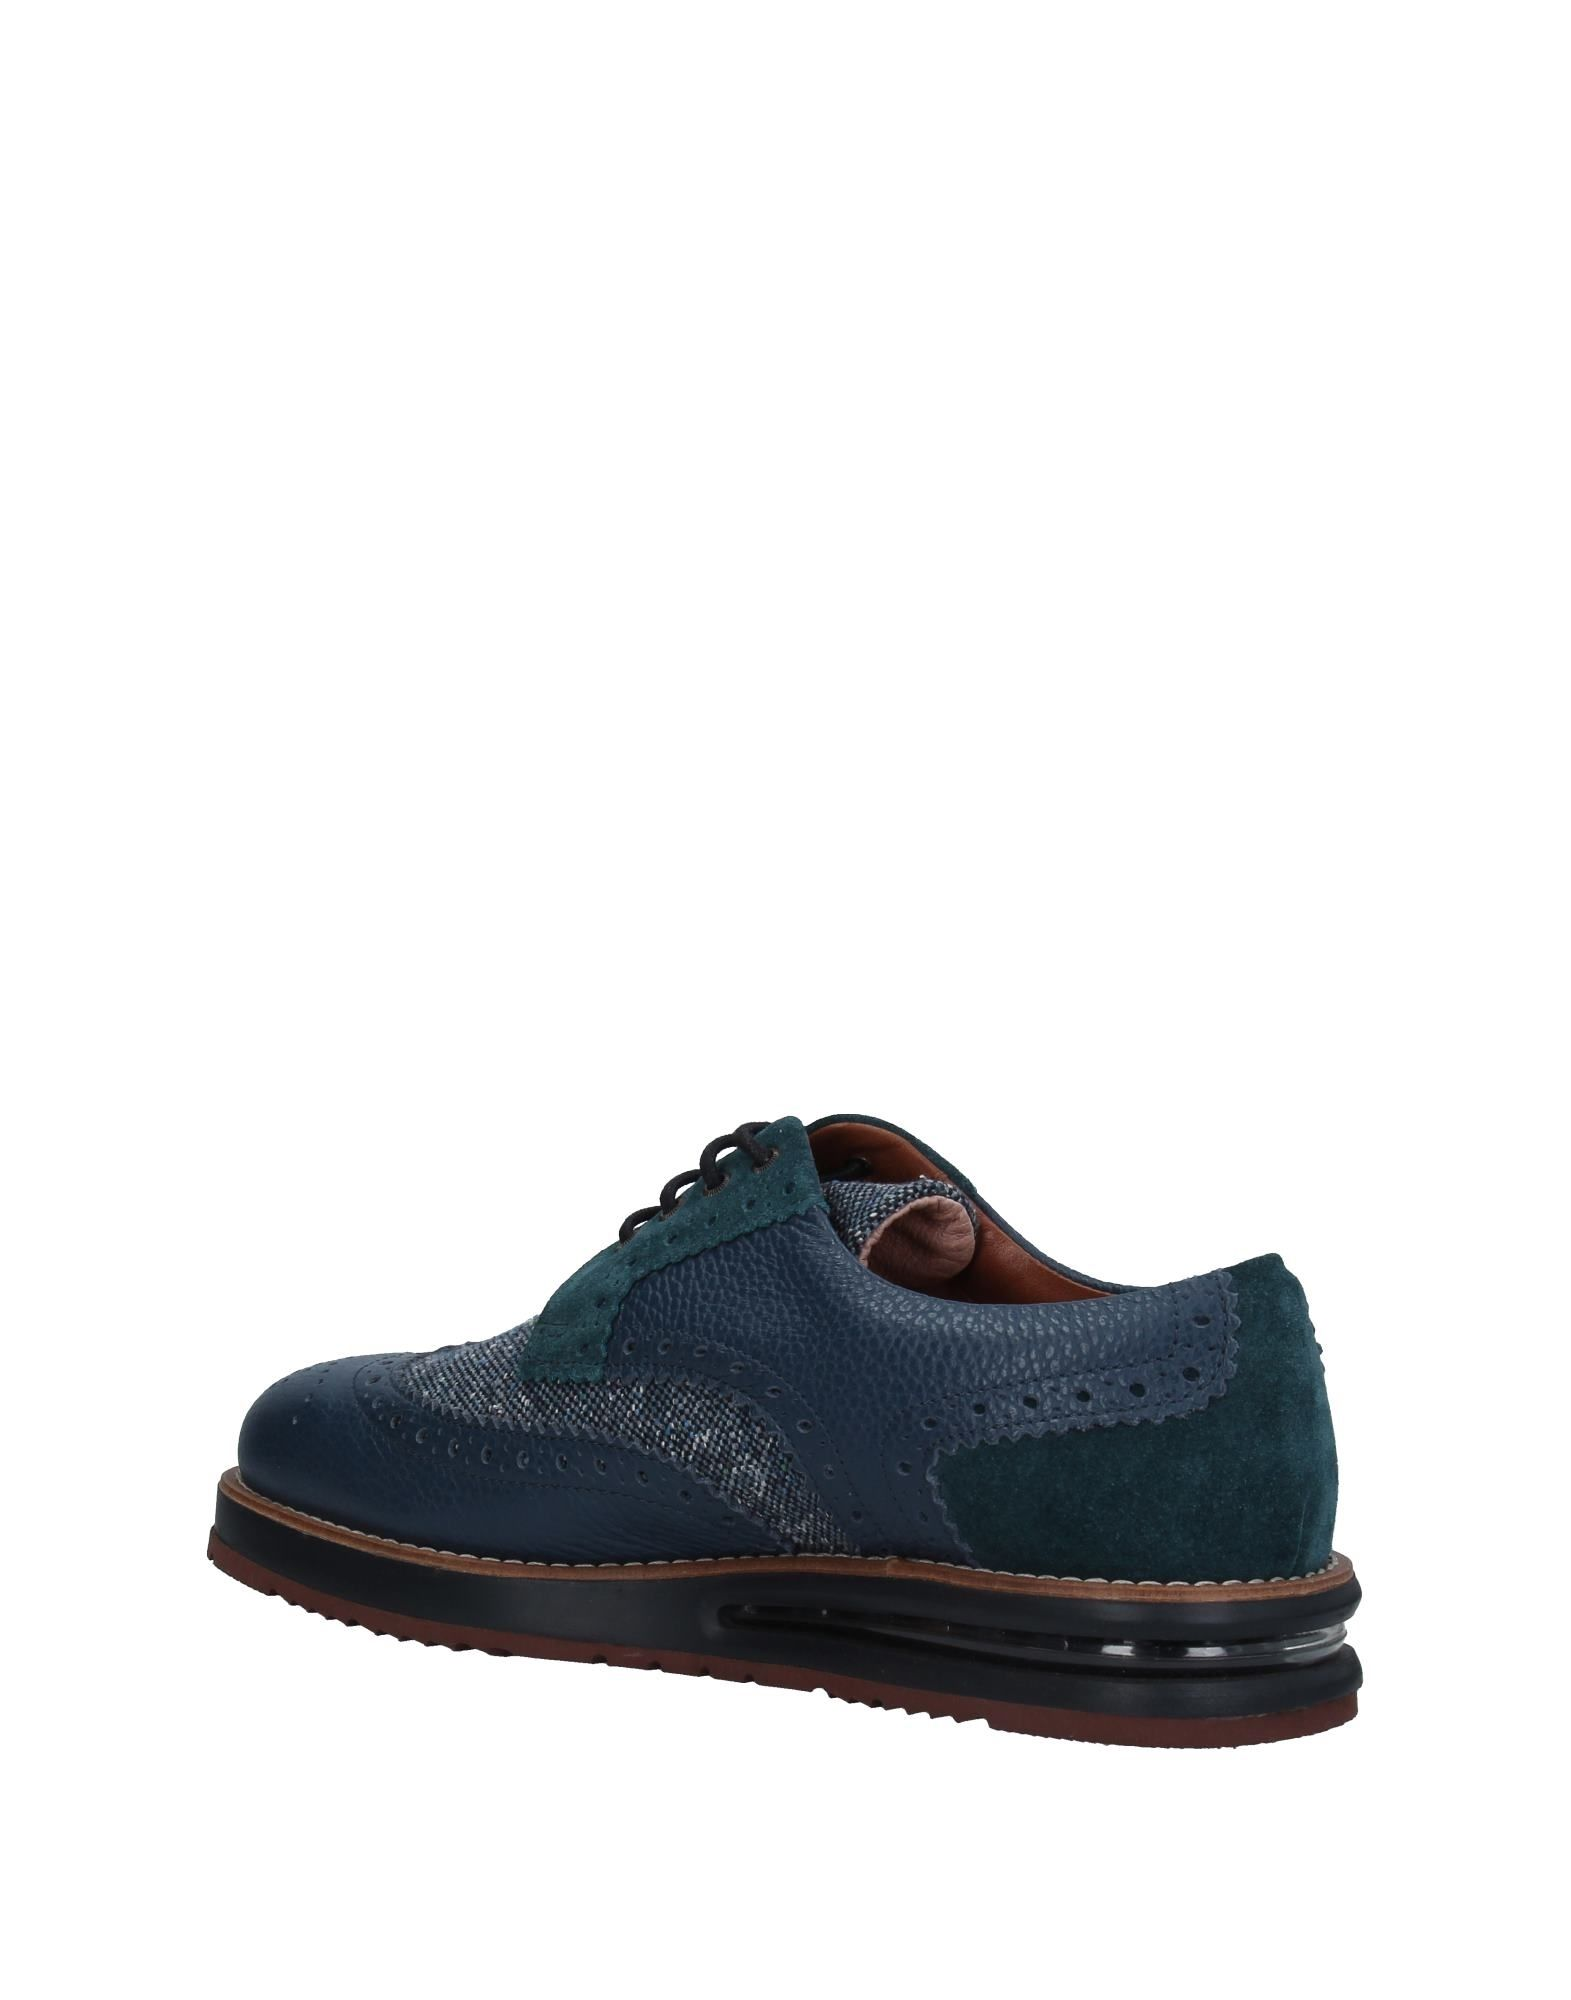 Chaussures À Lacets Barleycorn Homme - Chaussures À Lacets Barleycorn sur